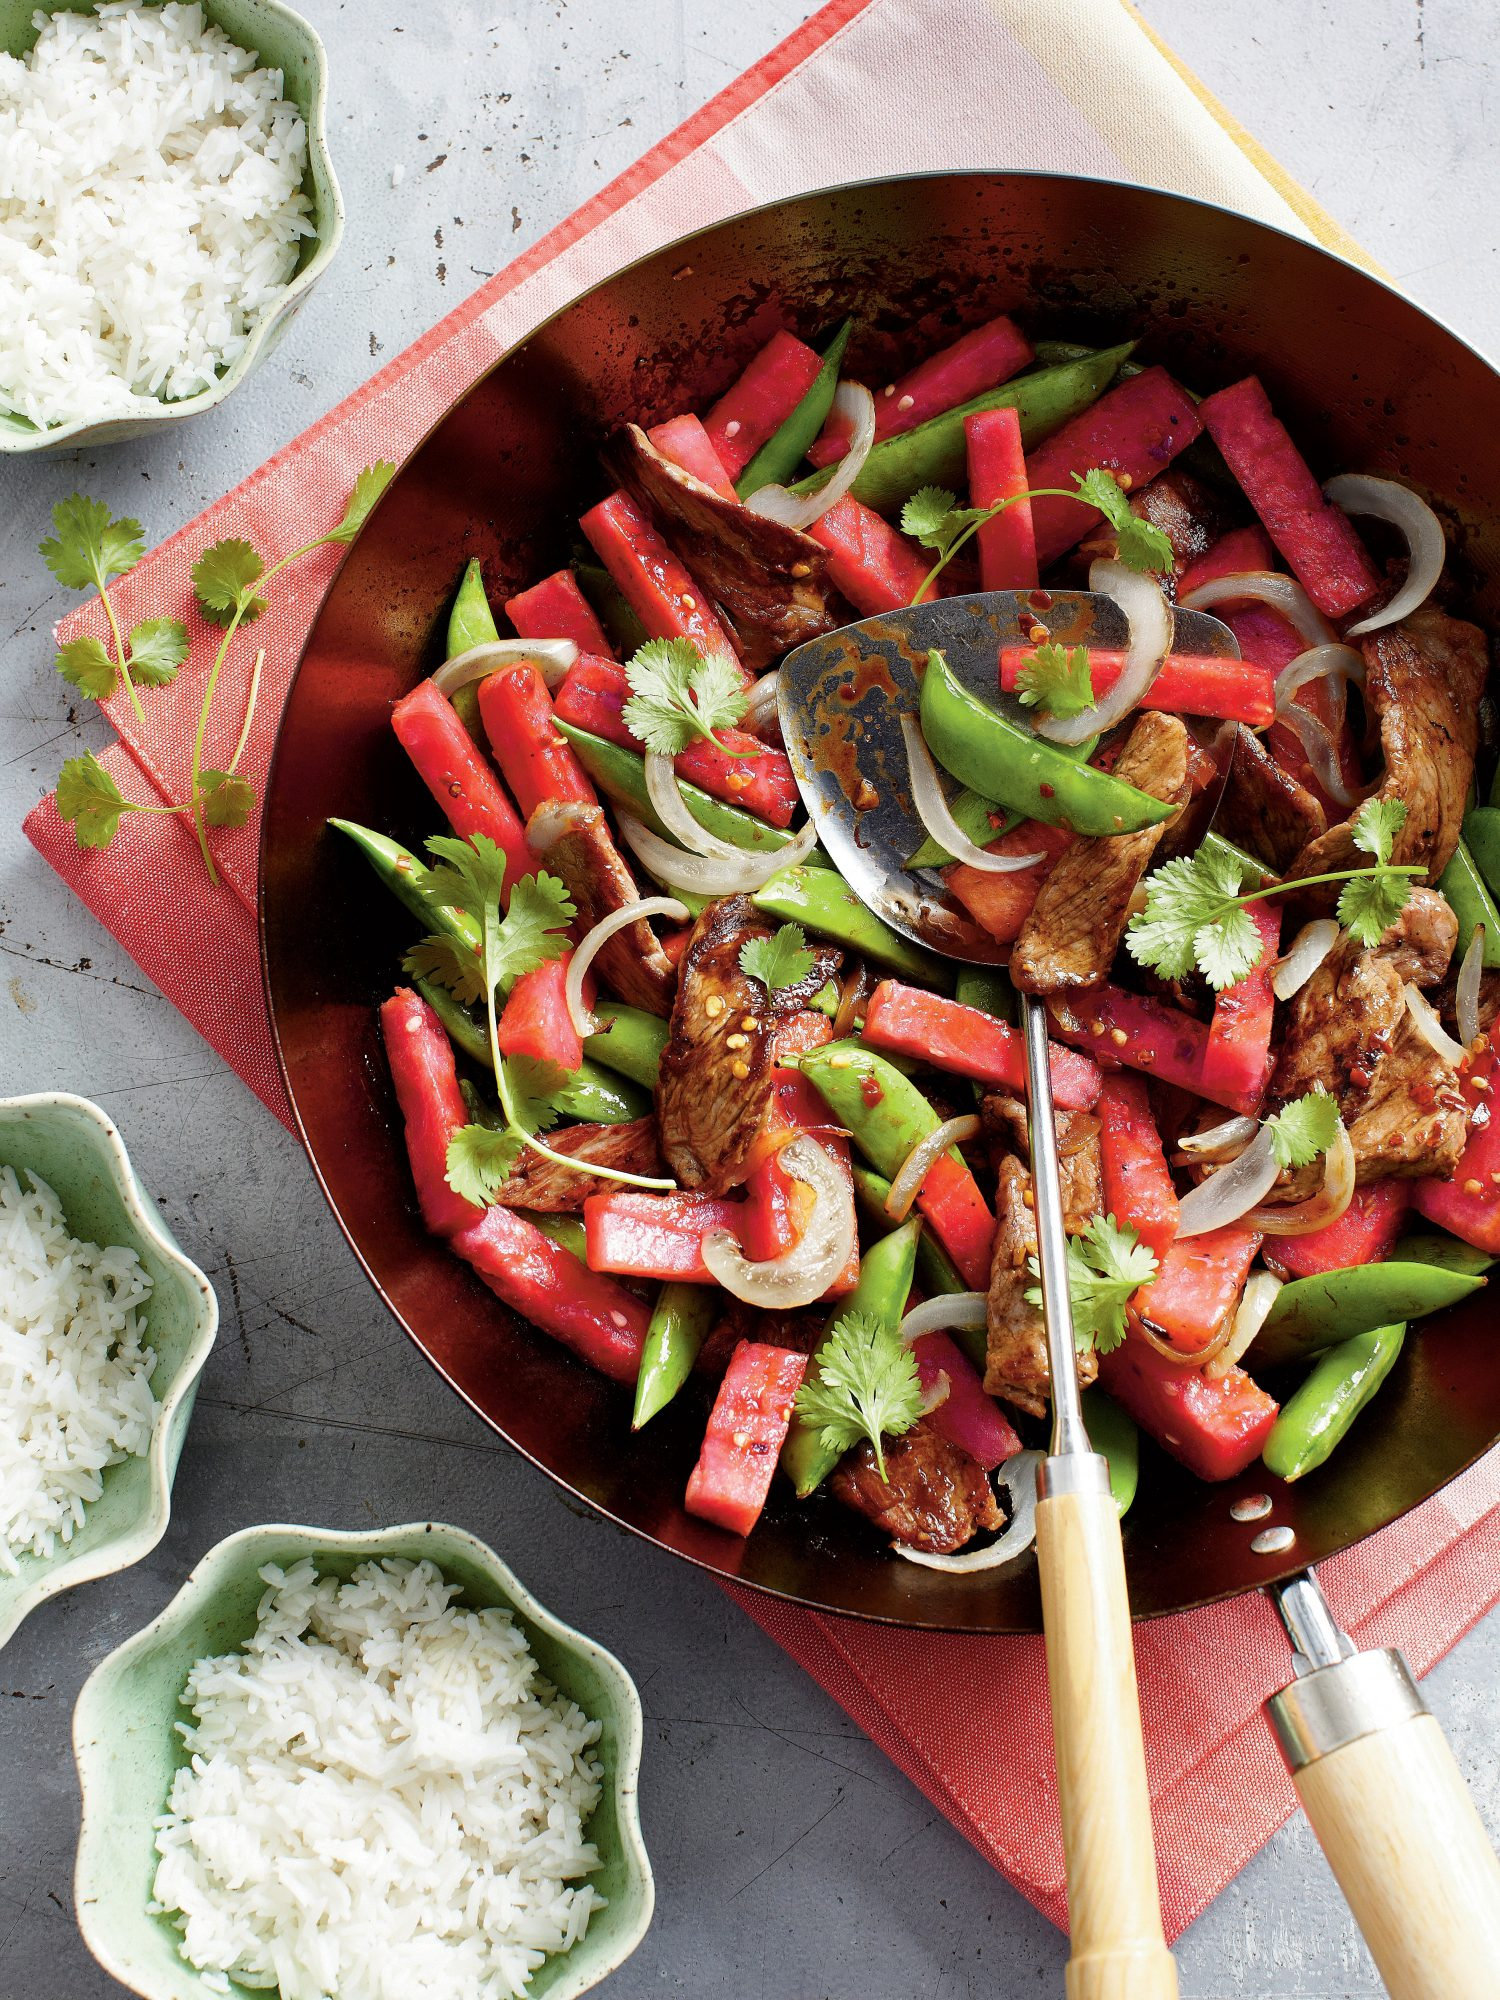 Beef-and-Watermelon Stir-Fry